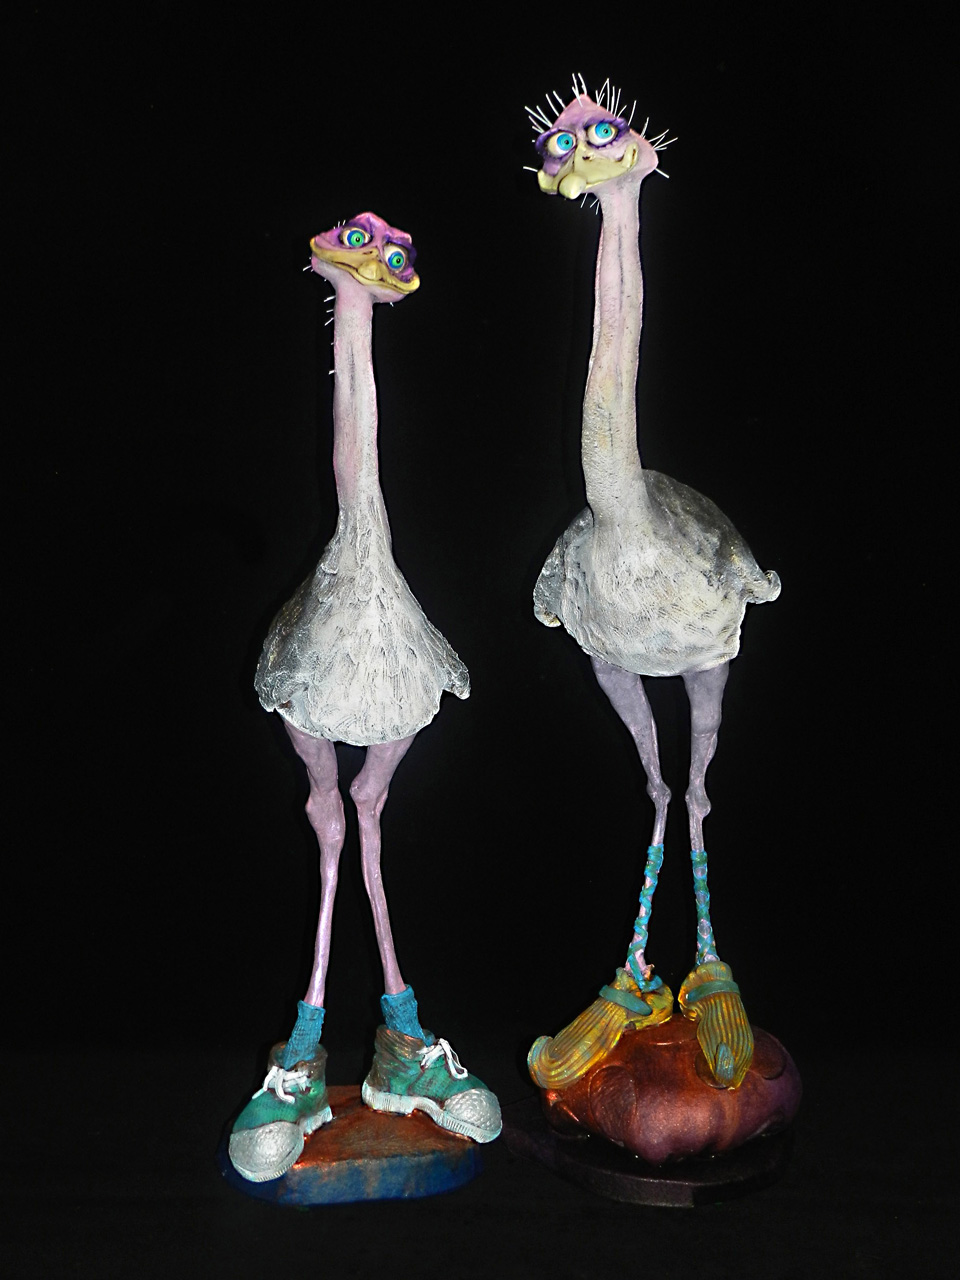 Ostrich by Steven Lee Smeltzer cartoonish whimsical clay sculpture of ostriches